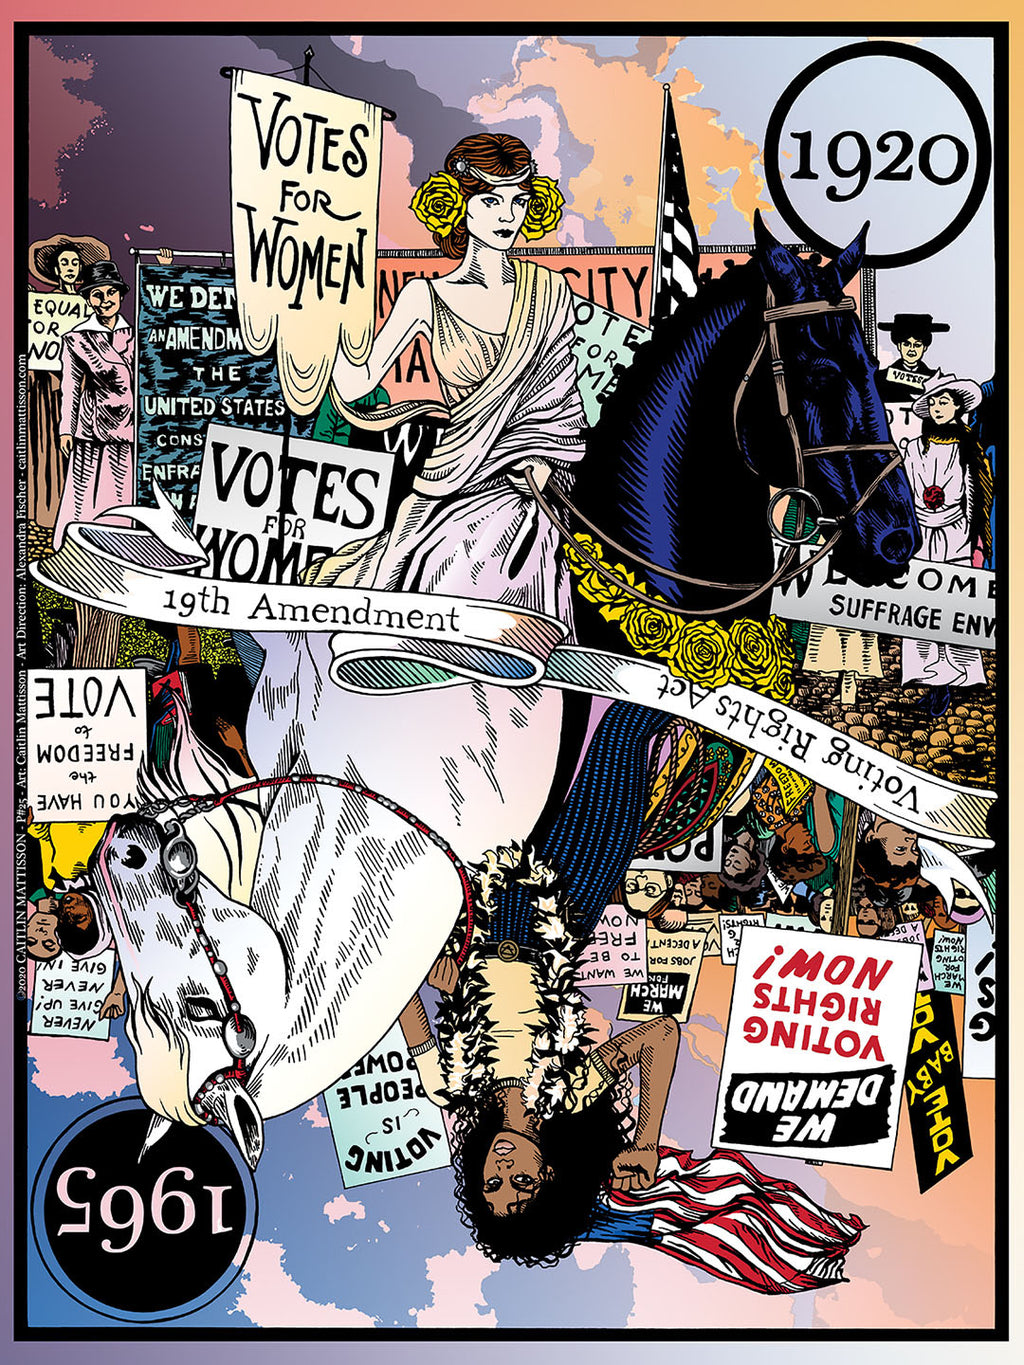 19th Amendment Poster by Caitlin Mattisson